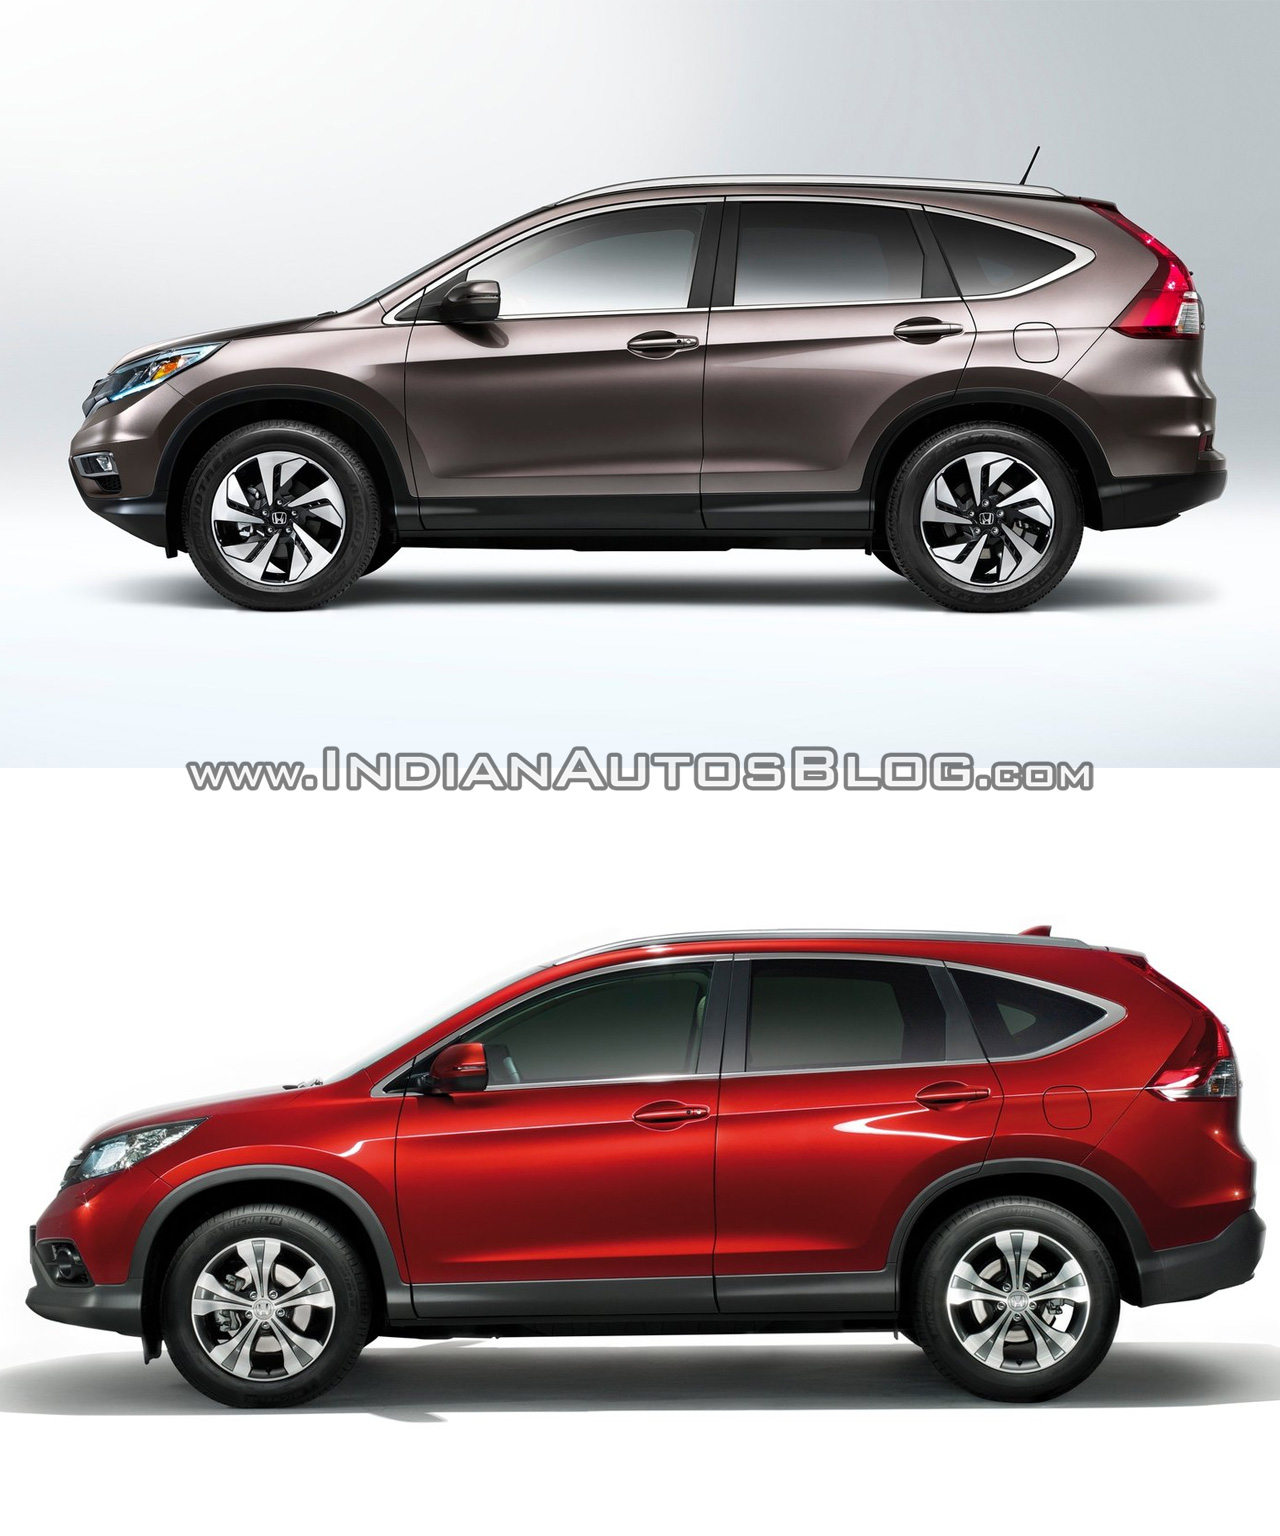 2015 Honda CR V (facelift) Side Vs Pre Facelift Model Side